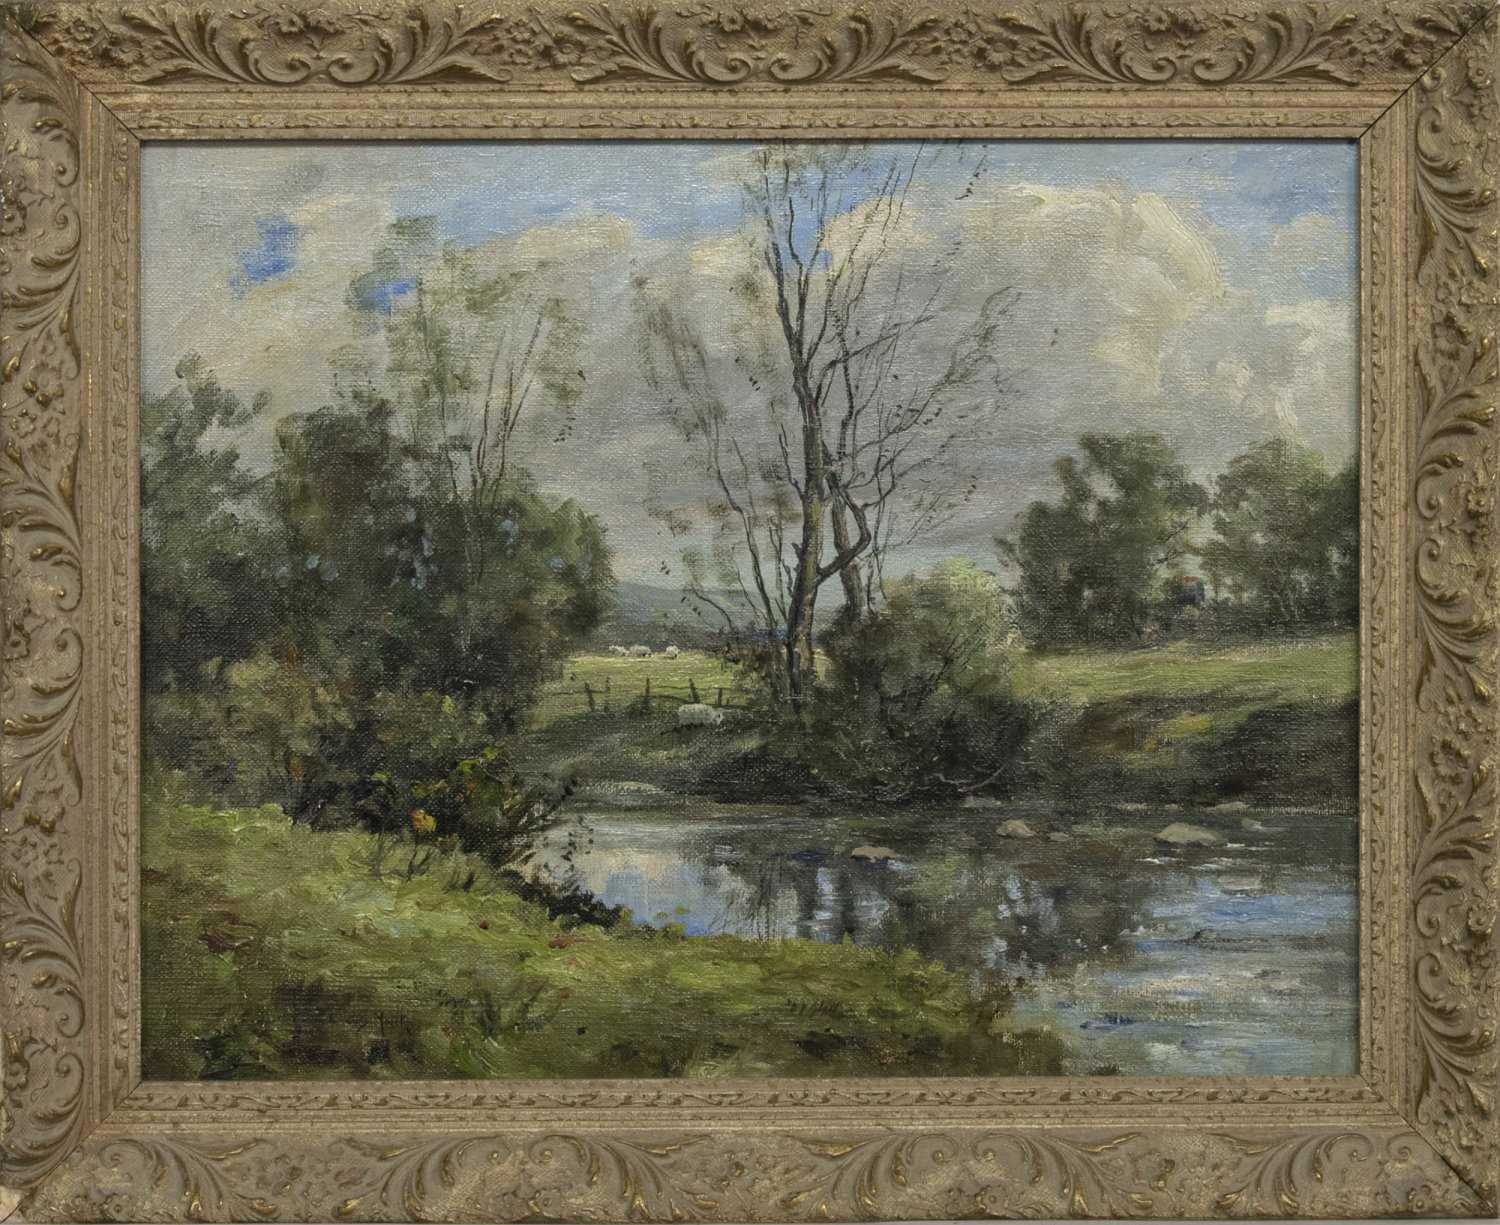 Lot 30 - RIVER AND SHEEP IN SPRING, AN OIL BY EMILE VAN MARCKE